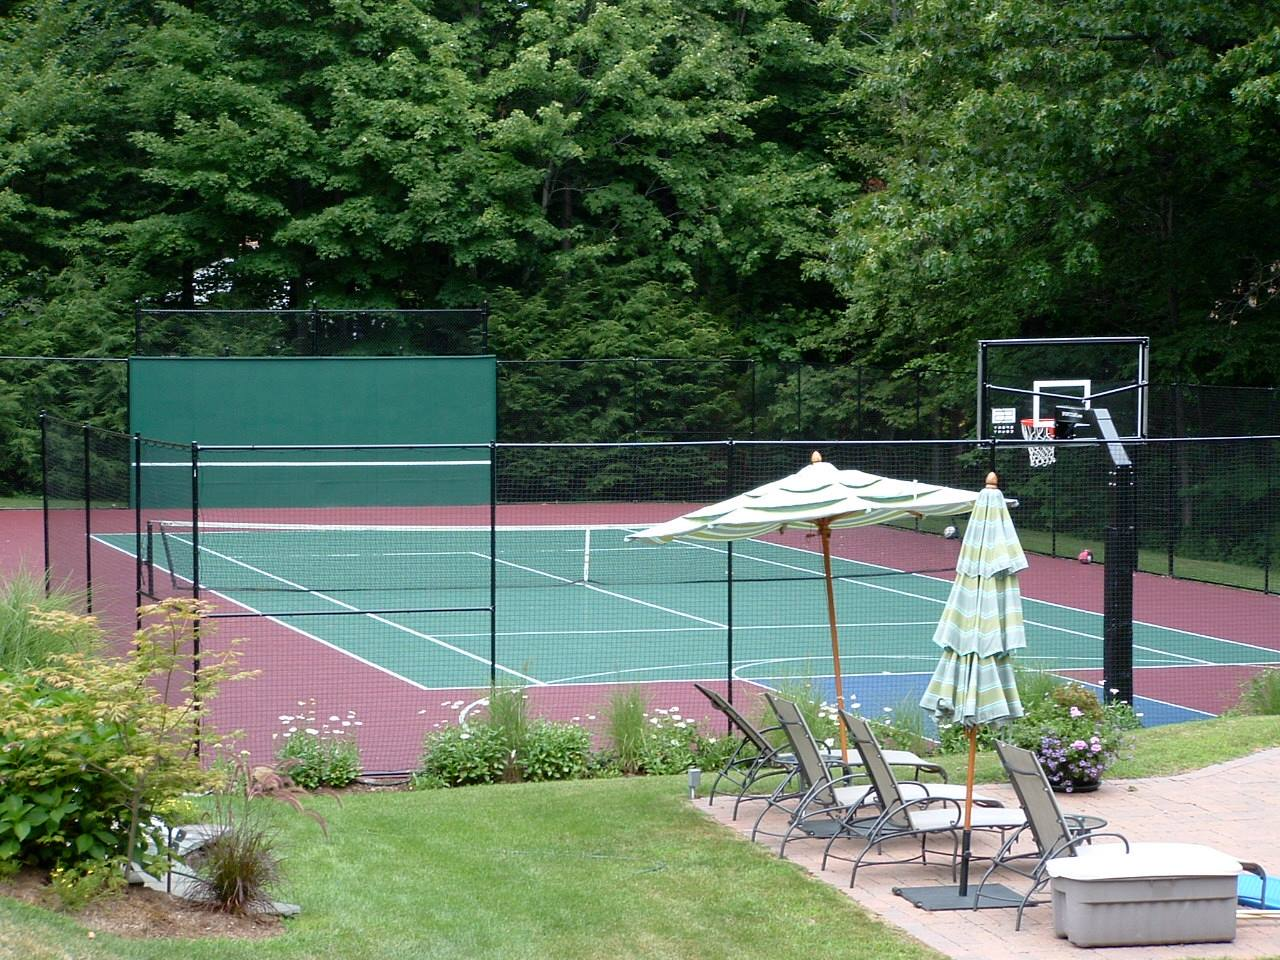 How To Make Tennis Court In Backyard